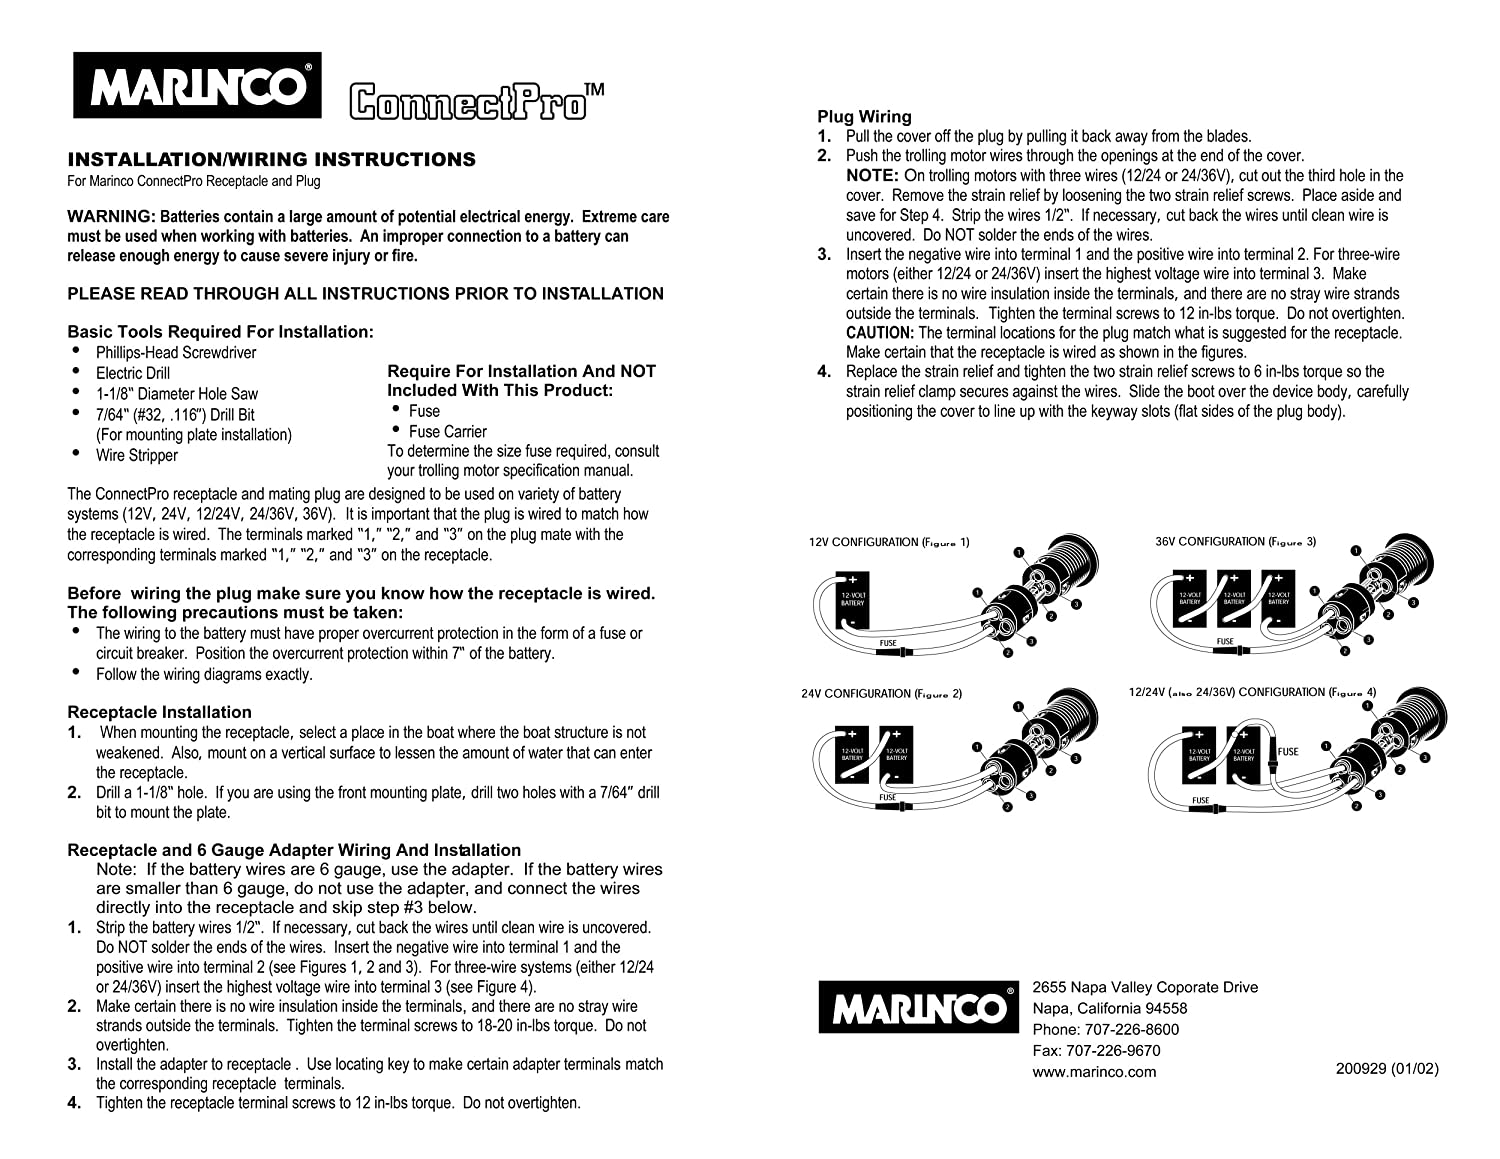 91ULQH2Yk6S._SL1500_ amazon com marinco 2 wire connectpro plug sports & outdoors marinco 4 prong plug wiring diagram at soozxer.org